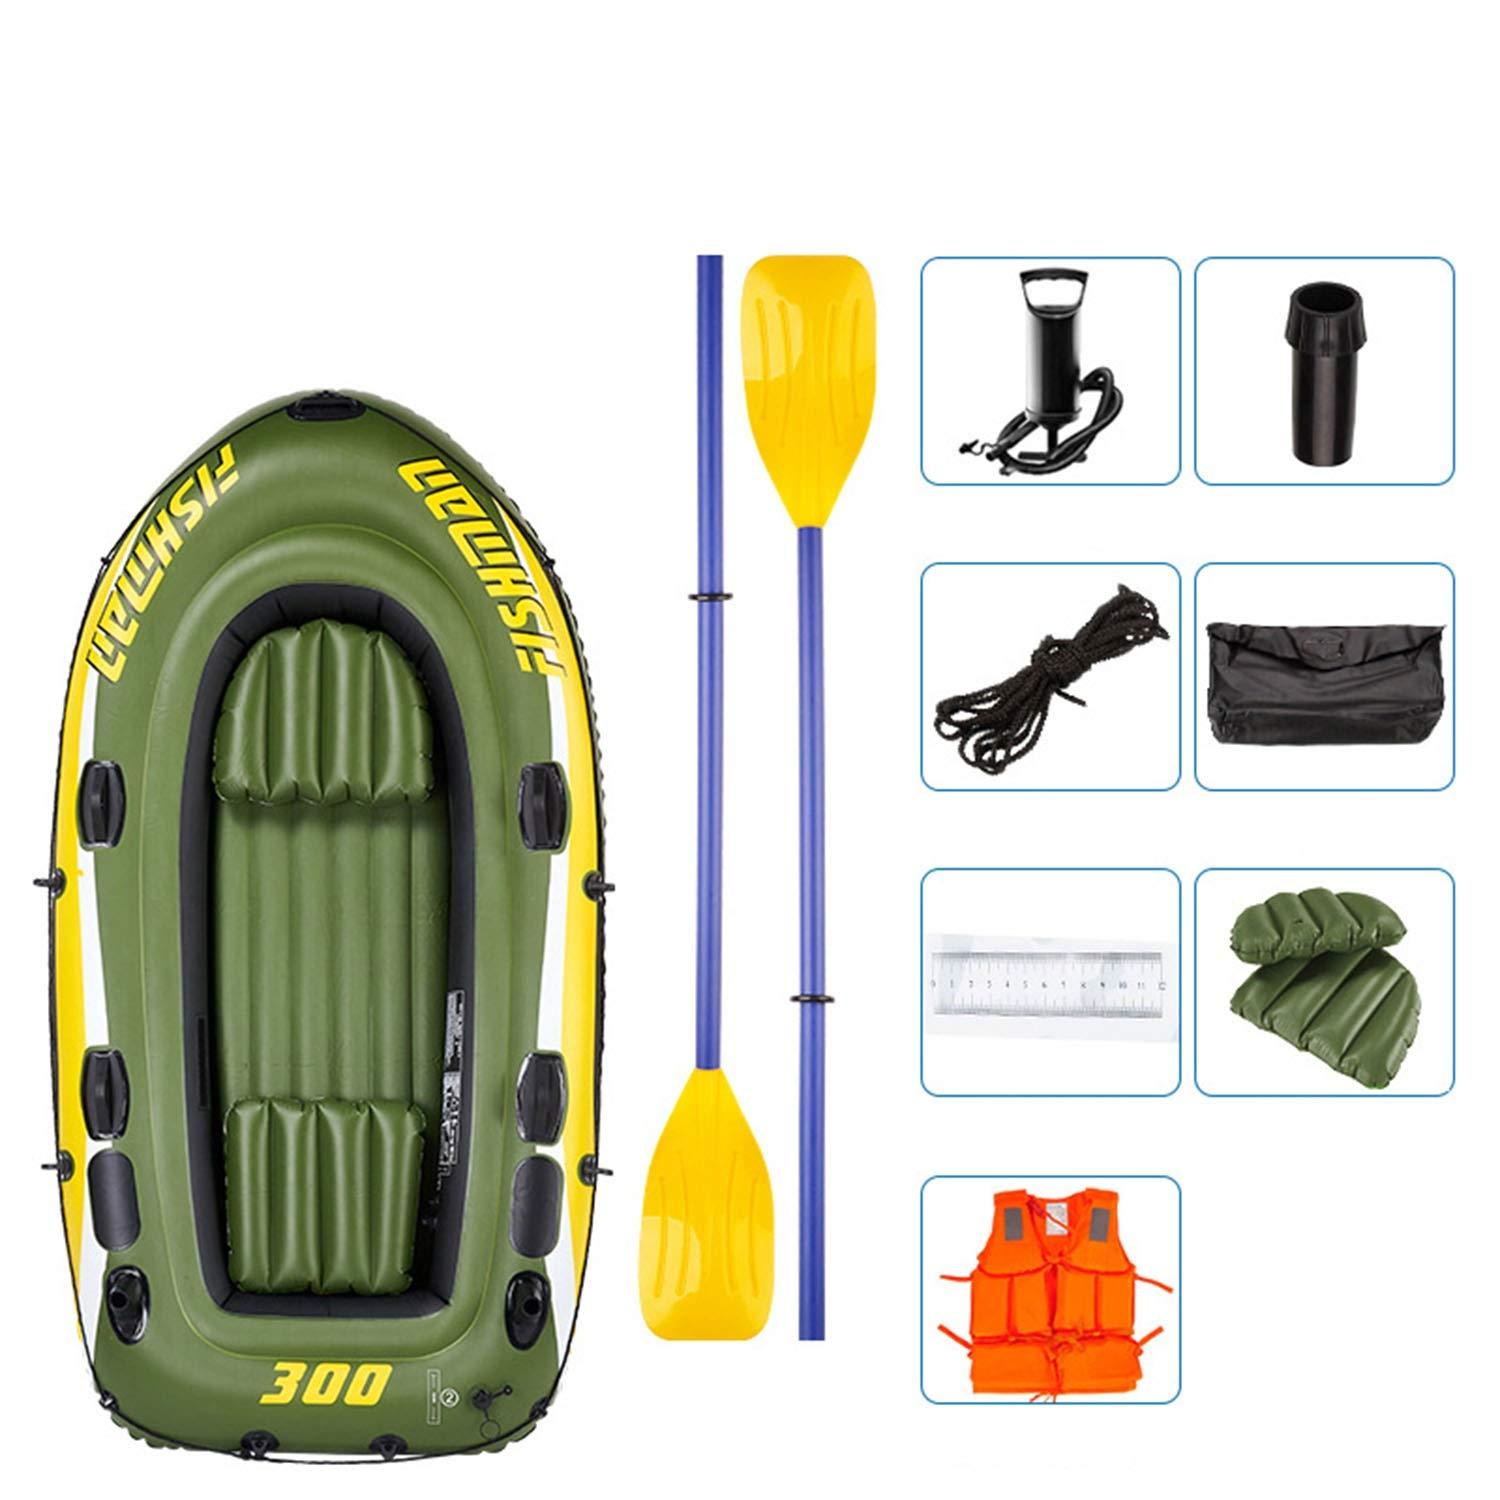 Inflatable Rubber Boat, River Fishing Boat for 3 People, with 2 Aluminium Oars and Foot Pump, Max Load 350 kg